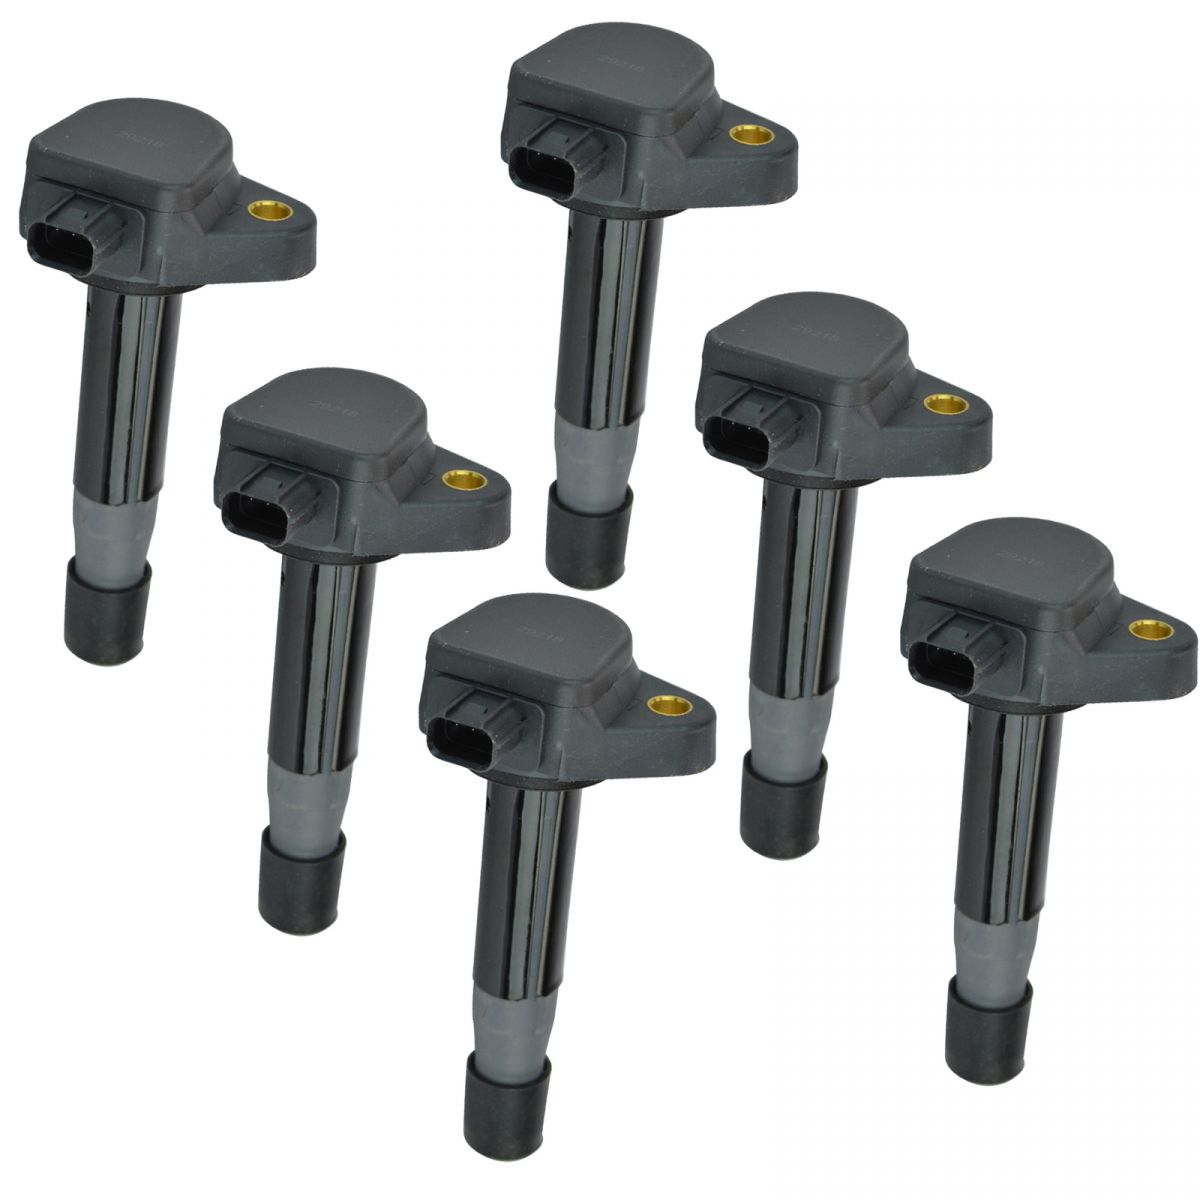 Ignition Coil Set Of 6 For Honda Accord Crosstour Odyssey